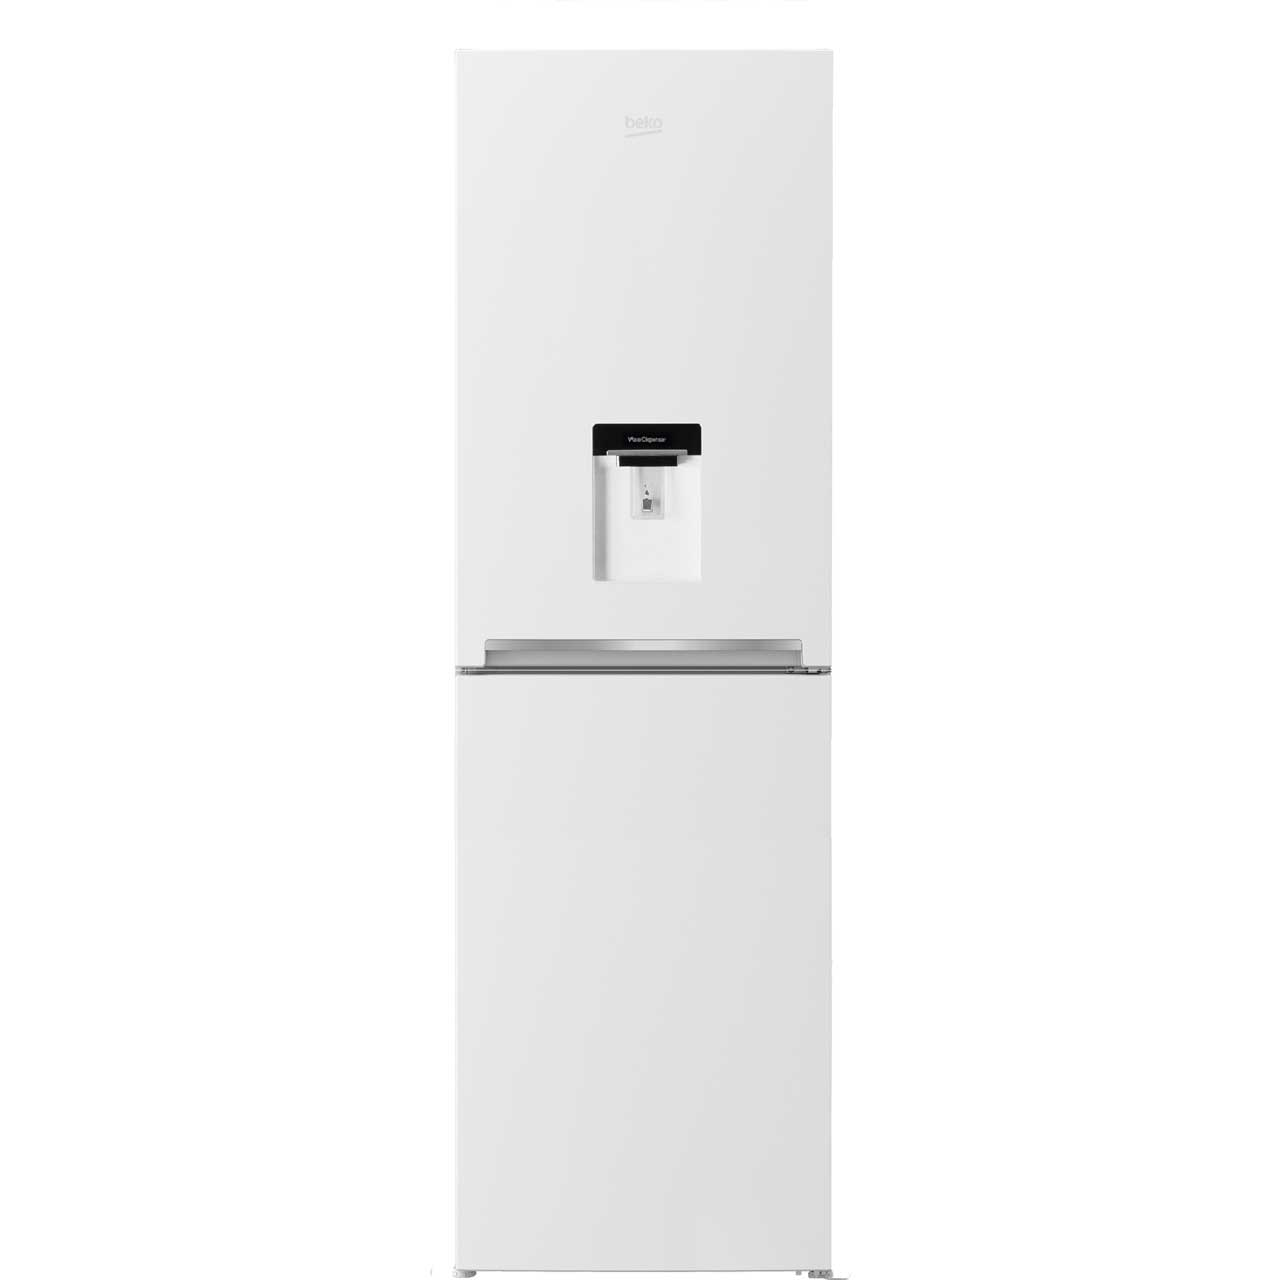 Beko CFG1582DW Free Standing Fridge Freezer Frost Free in White